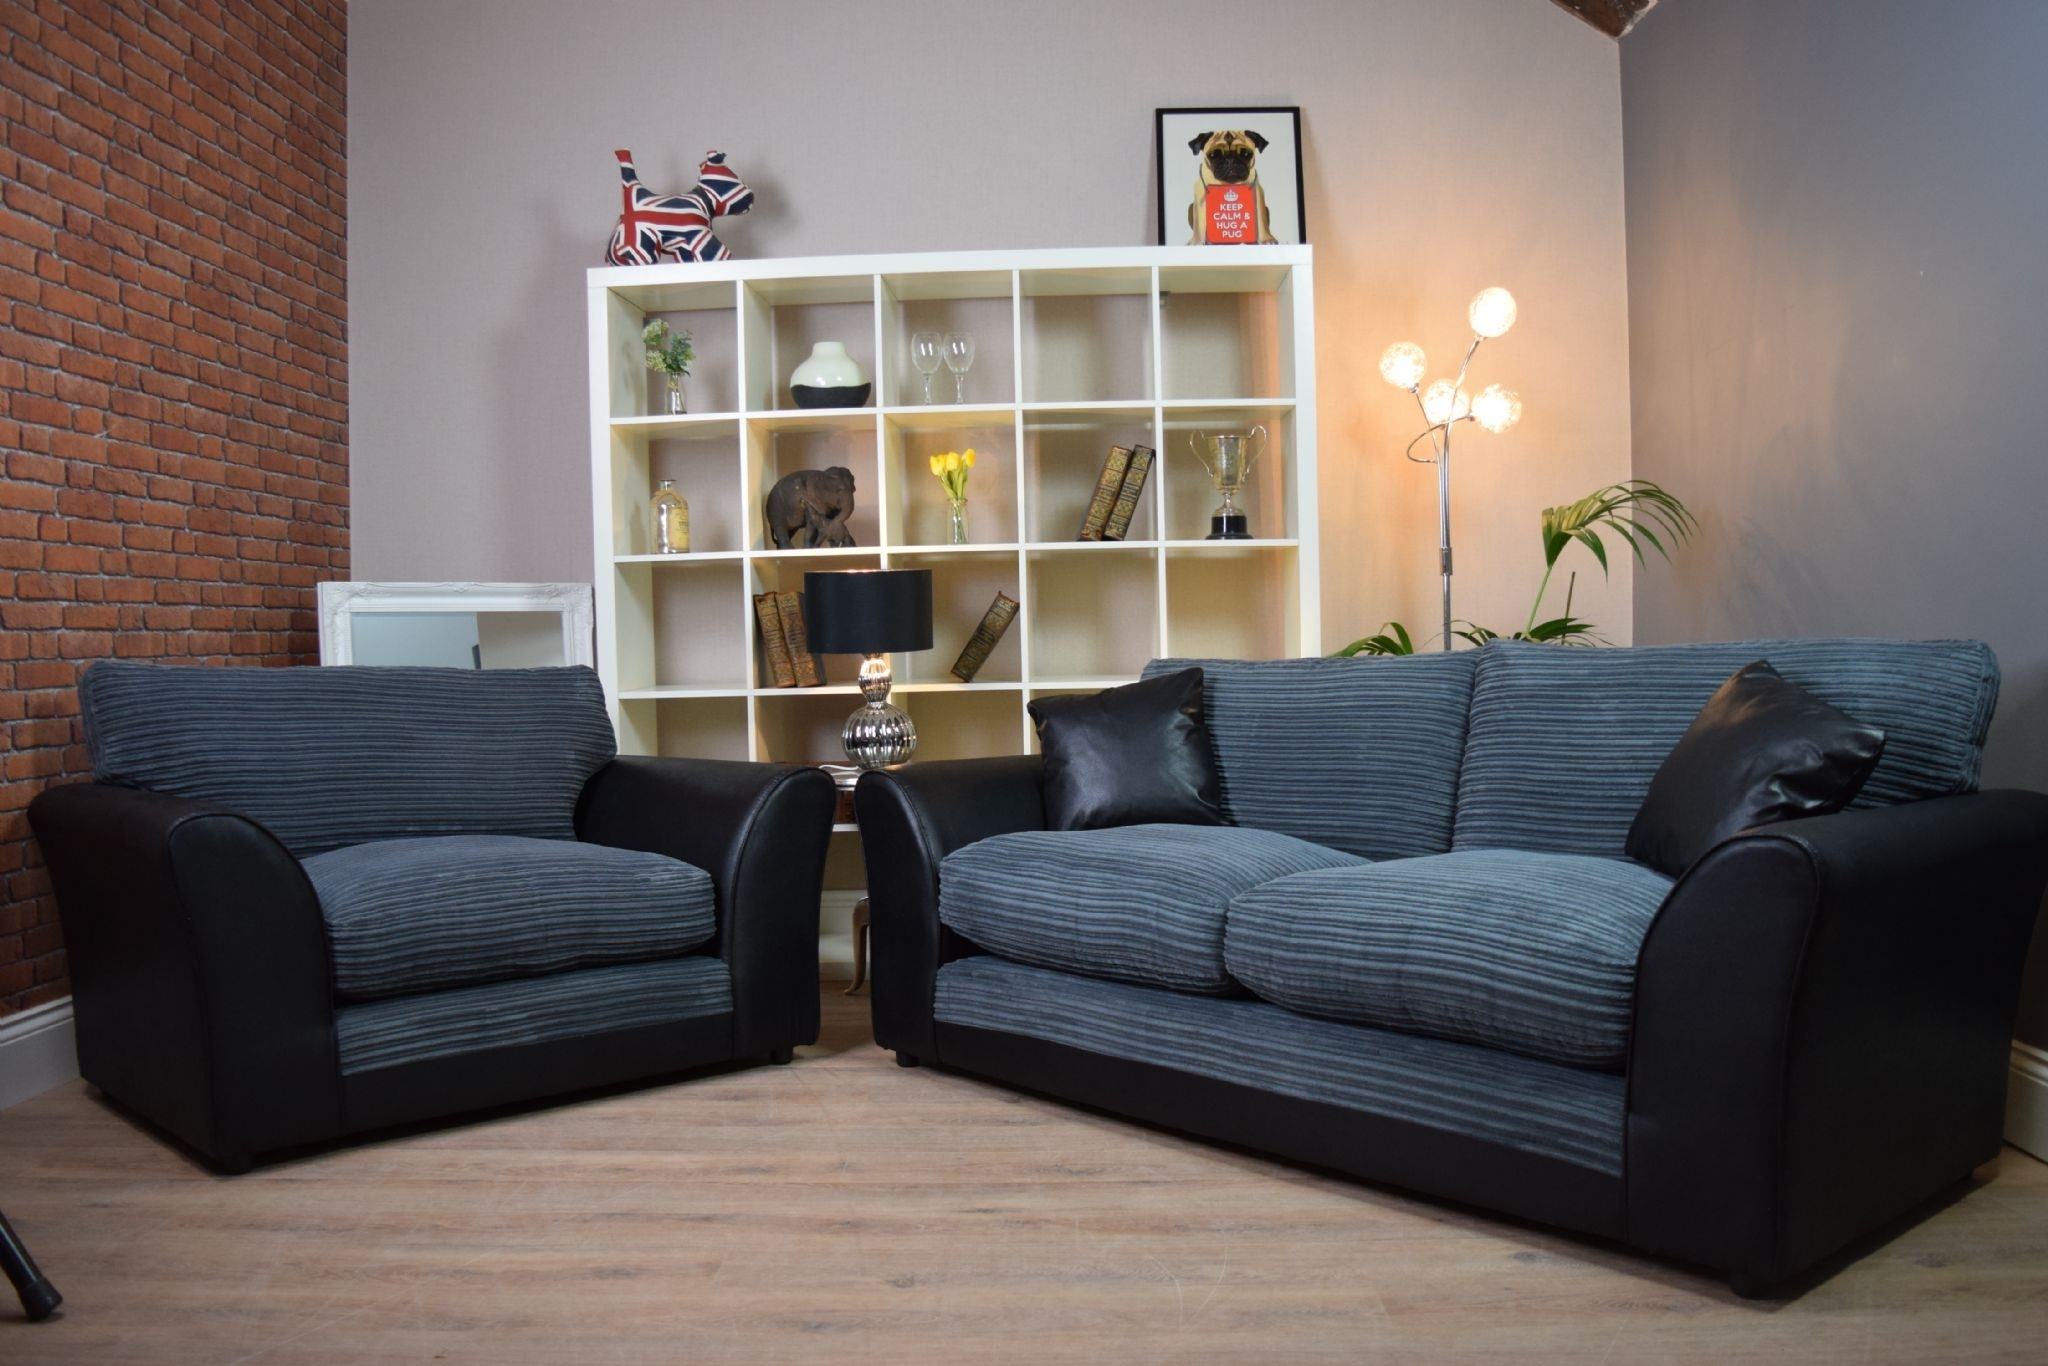 Set Harley Bailey 3 Seater Sofa Cuddle Chair Suite Set – Black Bison Throughout 3 Seater Sofas And Cuddle Chairs (View 2 of 10)